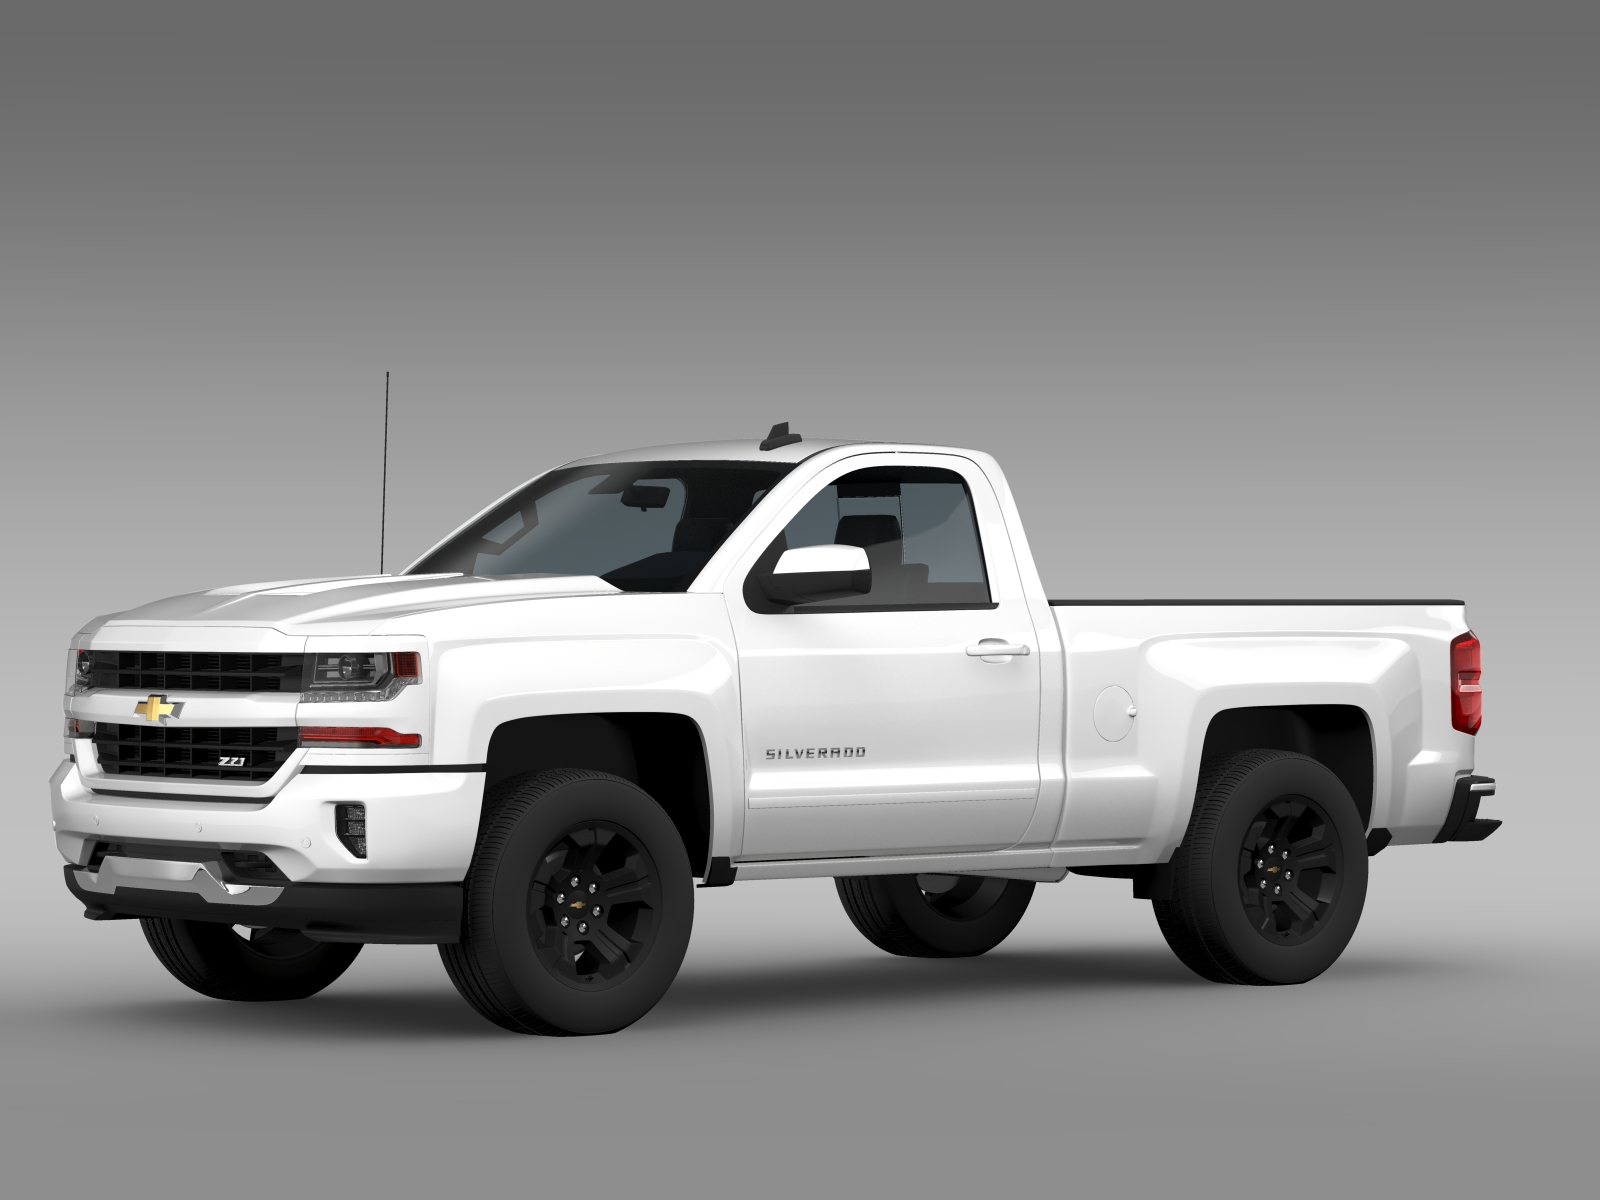 chevrolet silverado lt z71 regular cab gmtk2 stand 3d model buy chevrolet silverado lt z71. Black Bedroom Furniture Sets. Home Design Ideas